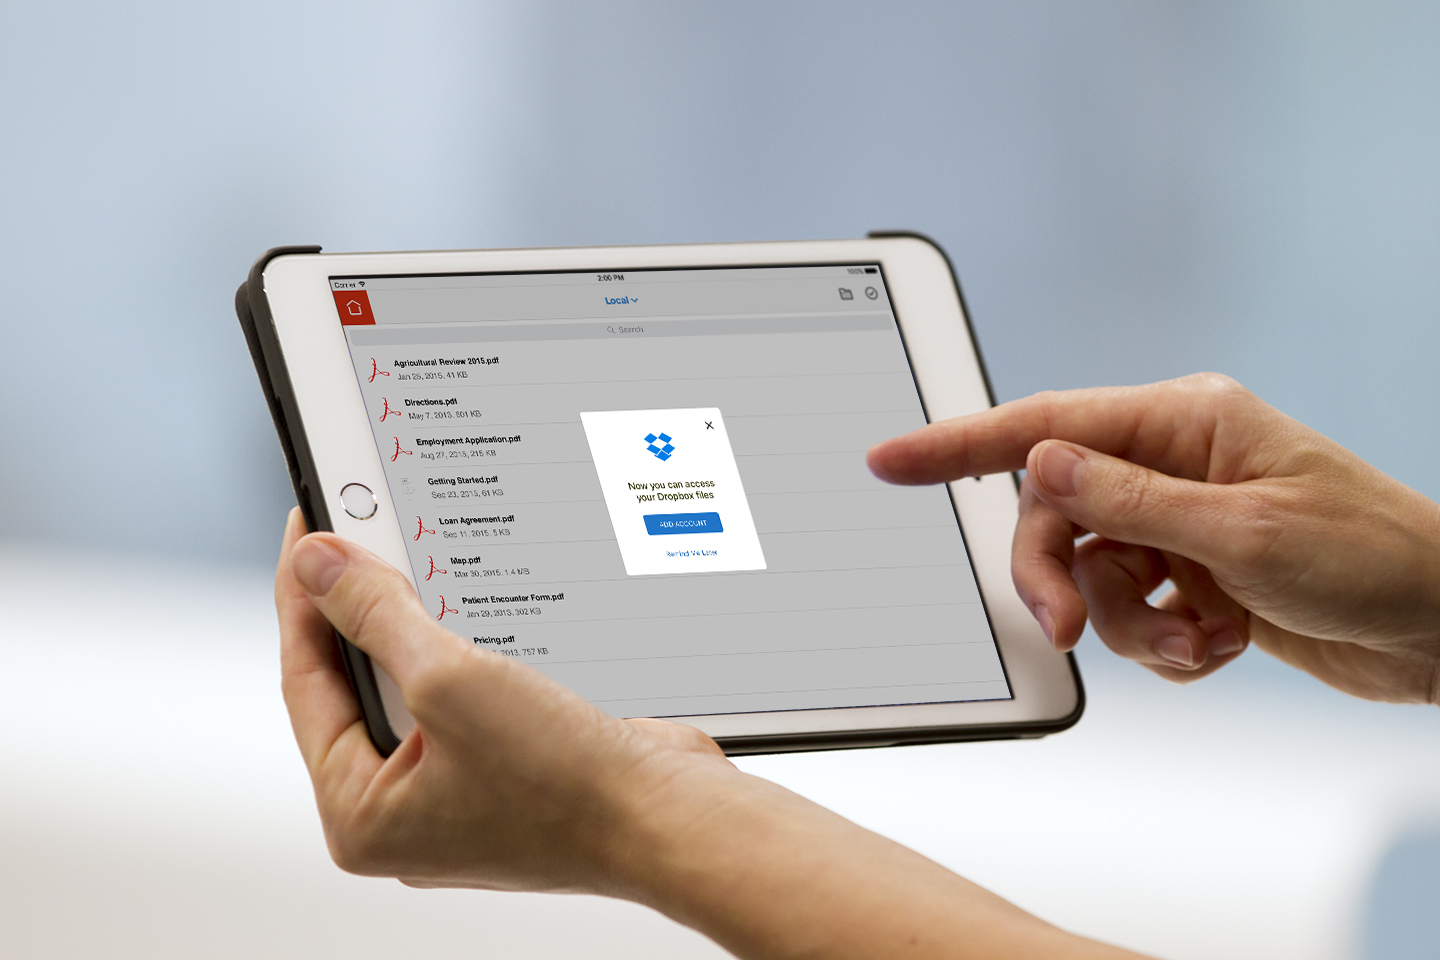 Adobe Updates Its Document Cloud With Dropbox Integration, Improved